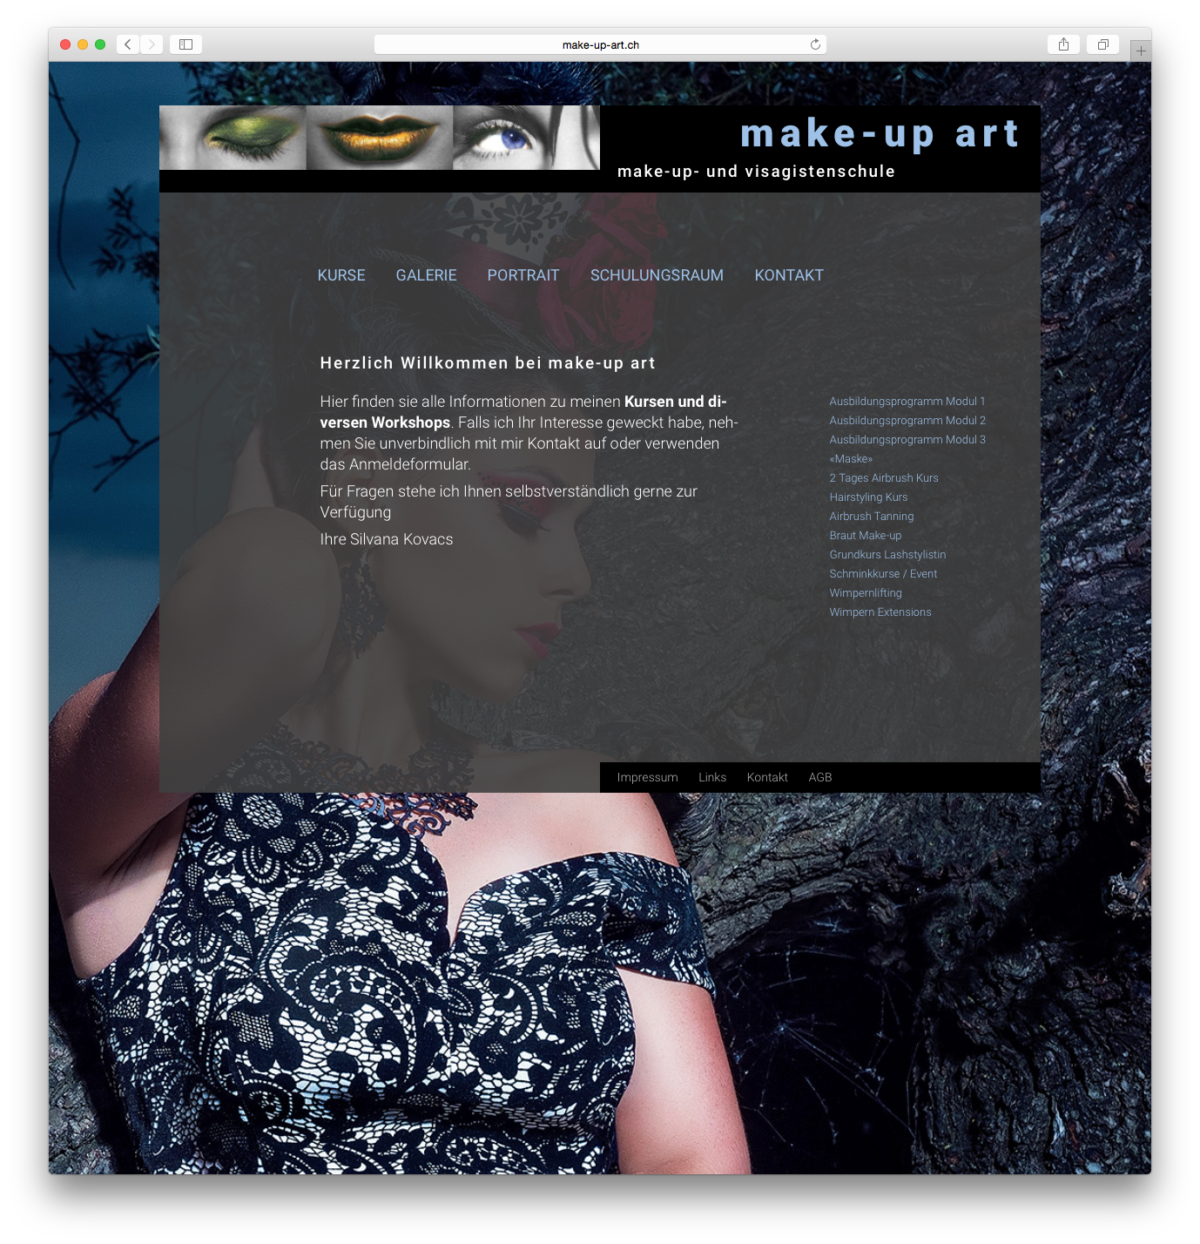 make-up-art.ch